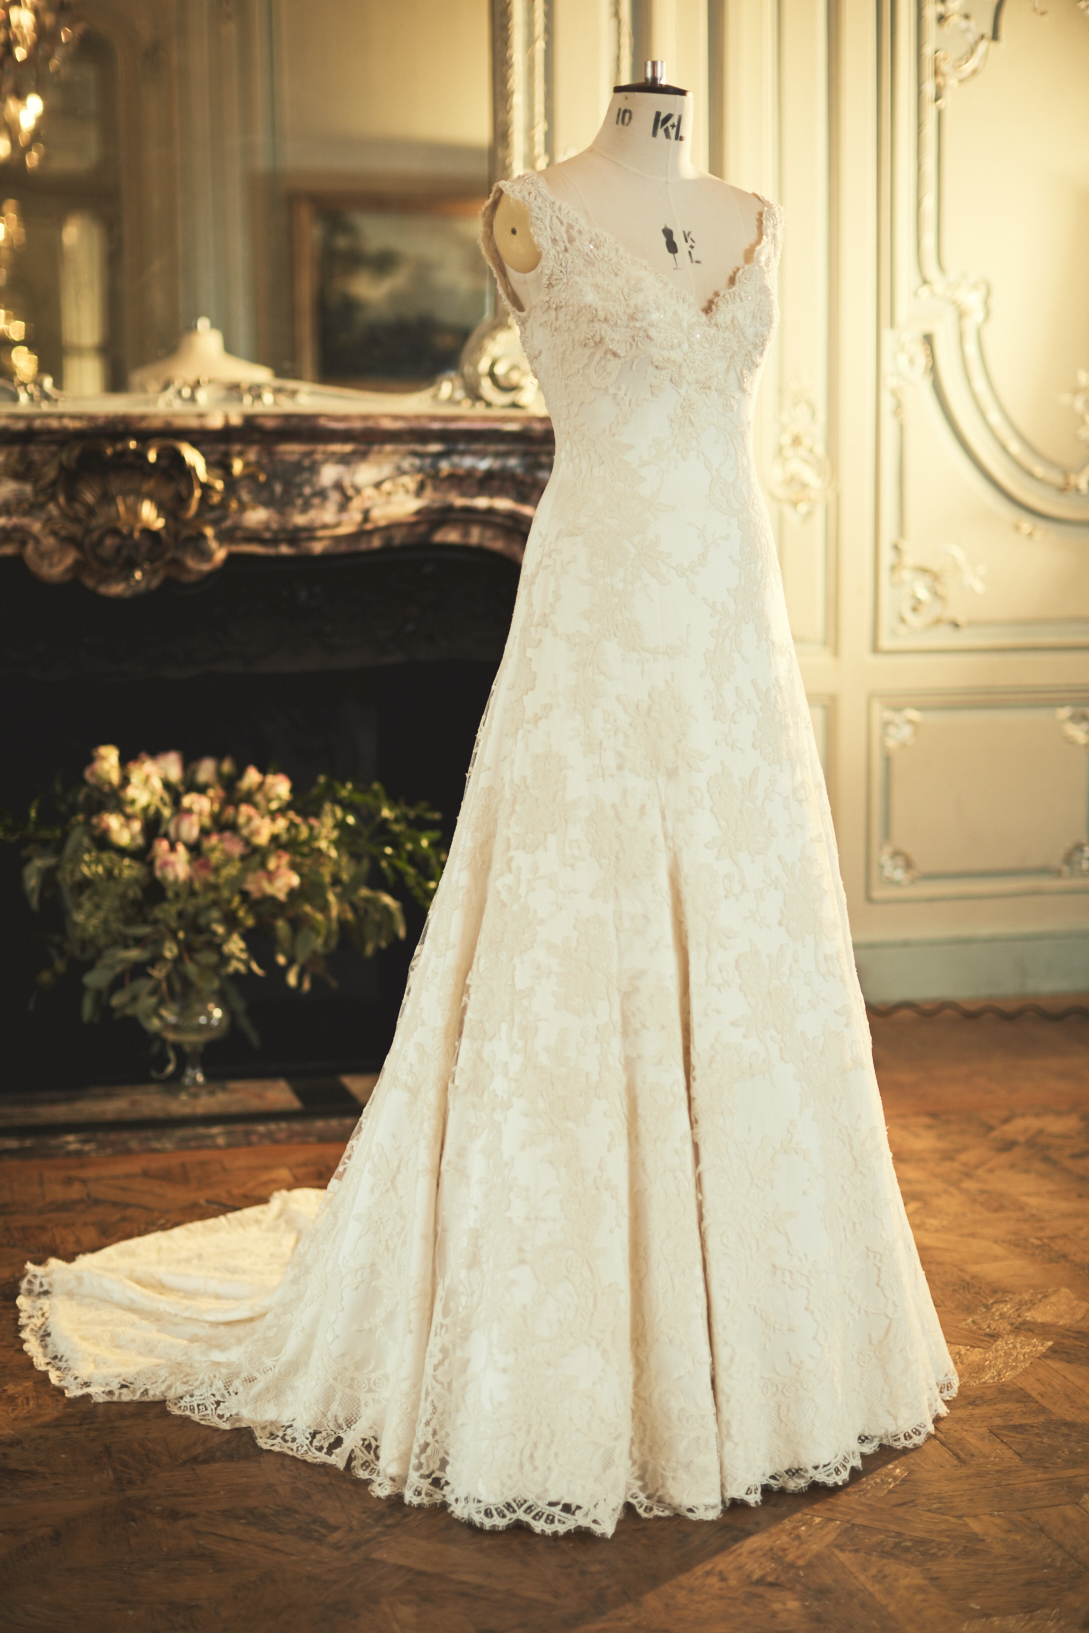 THE BESPOKE LACE WEDDING DRESS